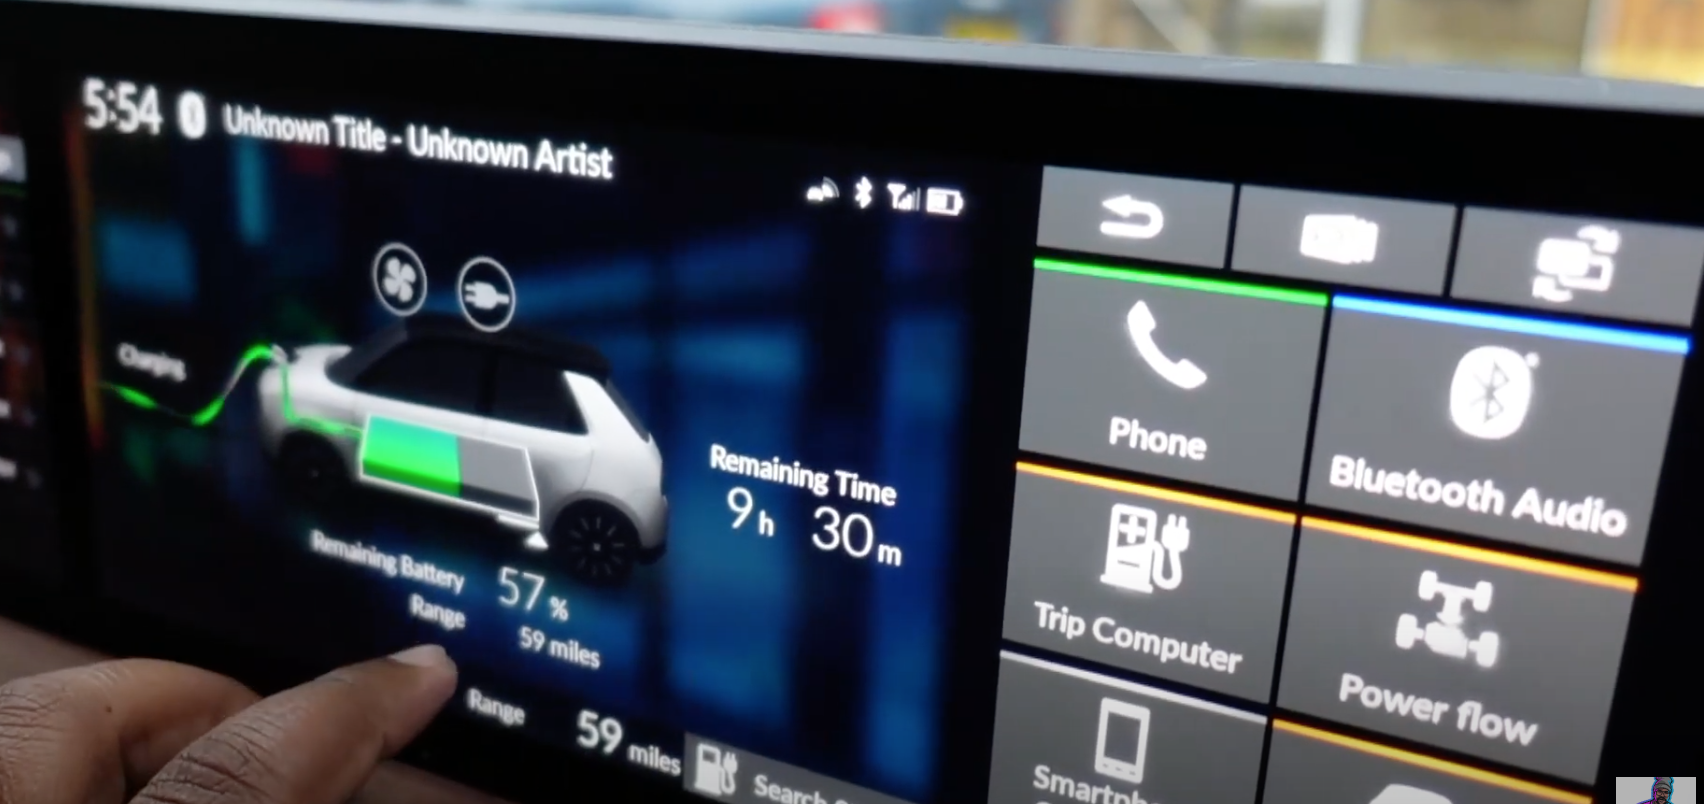 Information about the car's current battery level with a 3D model of a car